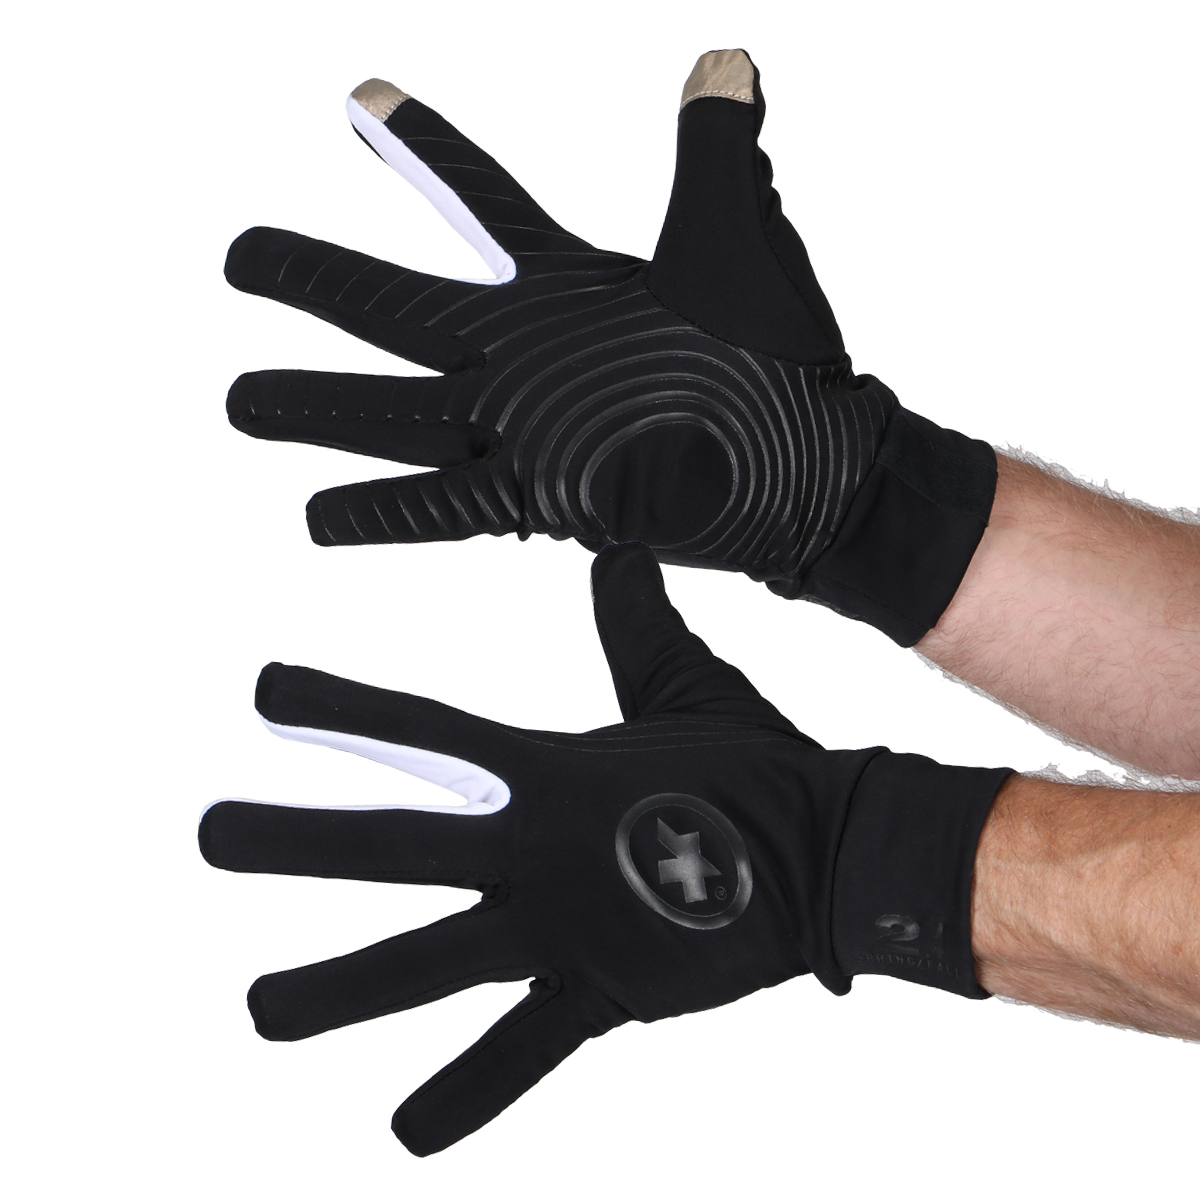 Assos Tiburu Evo 7 Cycling Gloves